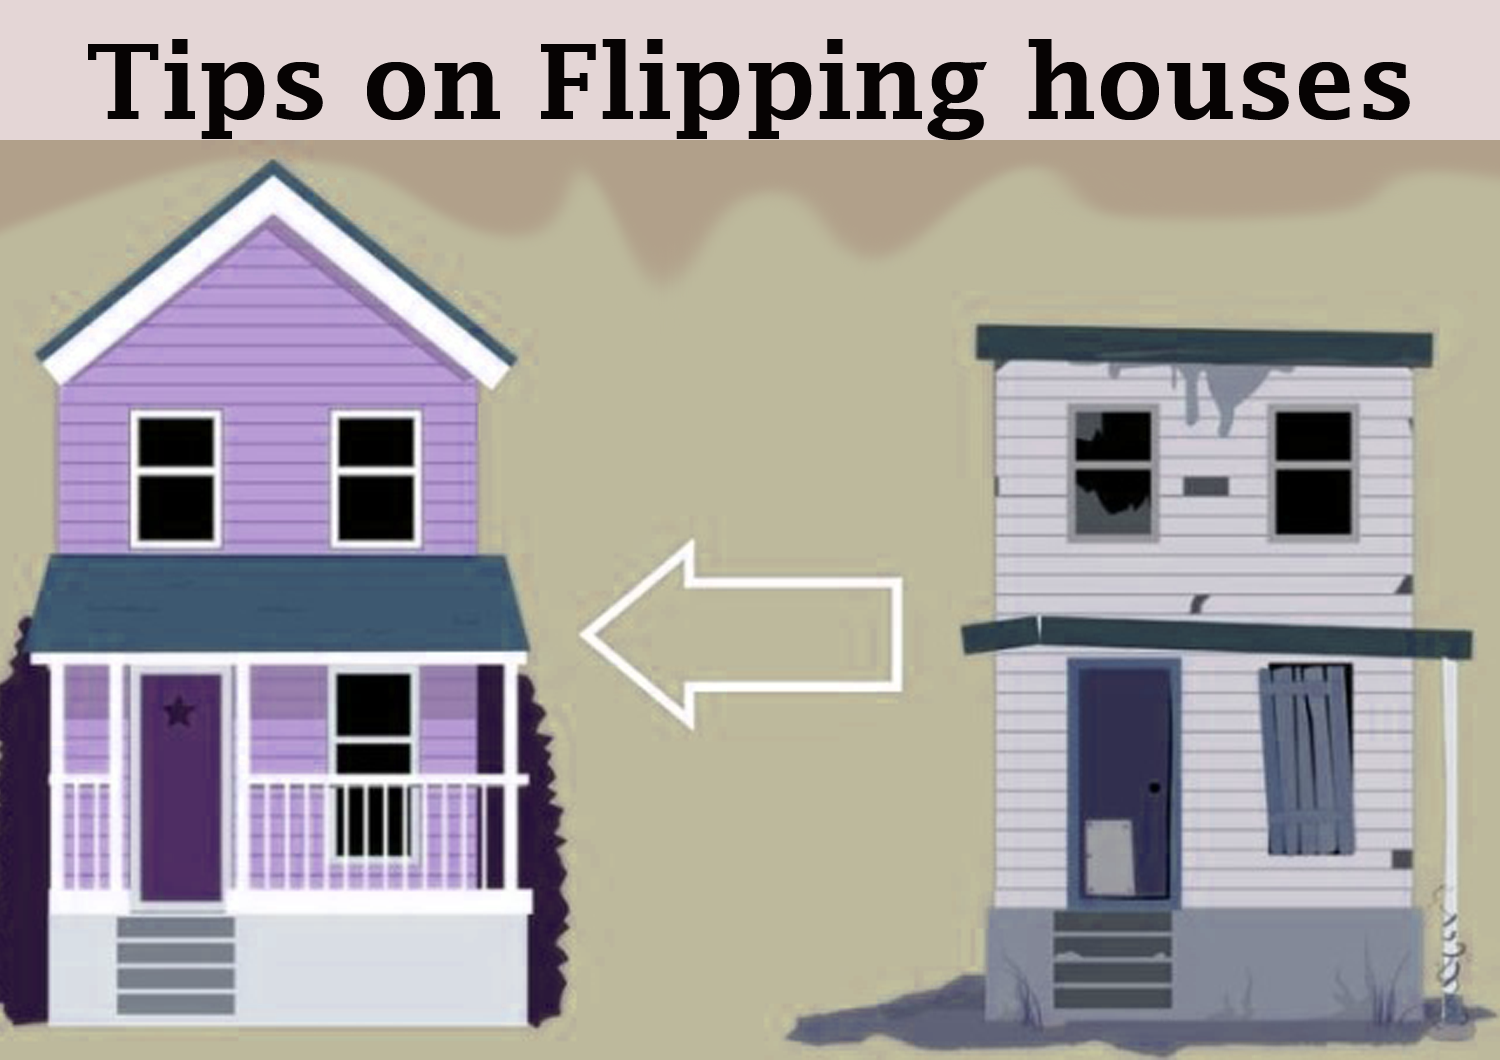 tips on flipping houses from dc fawcett dc fawcett